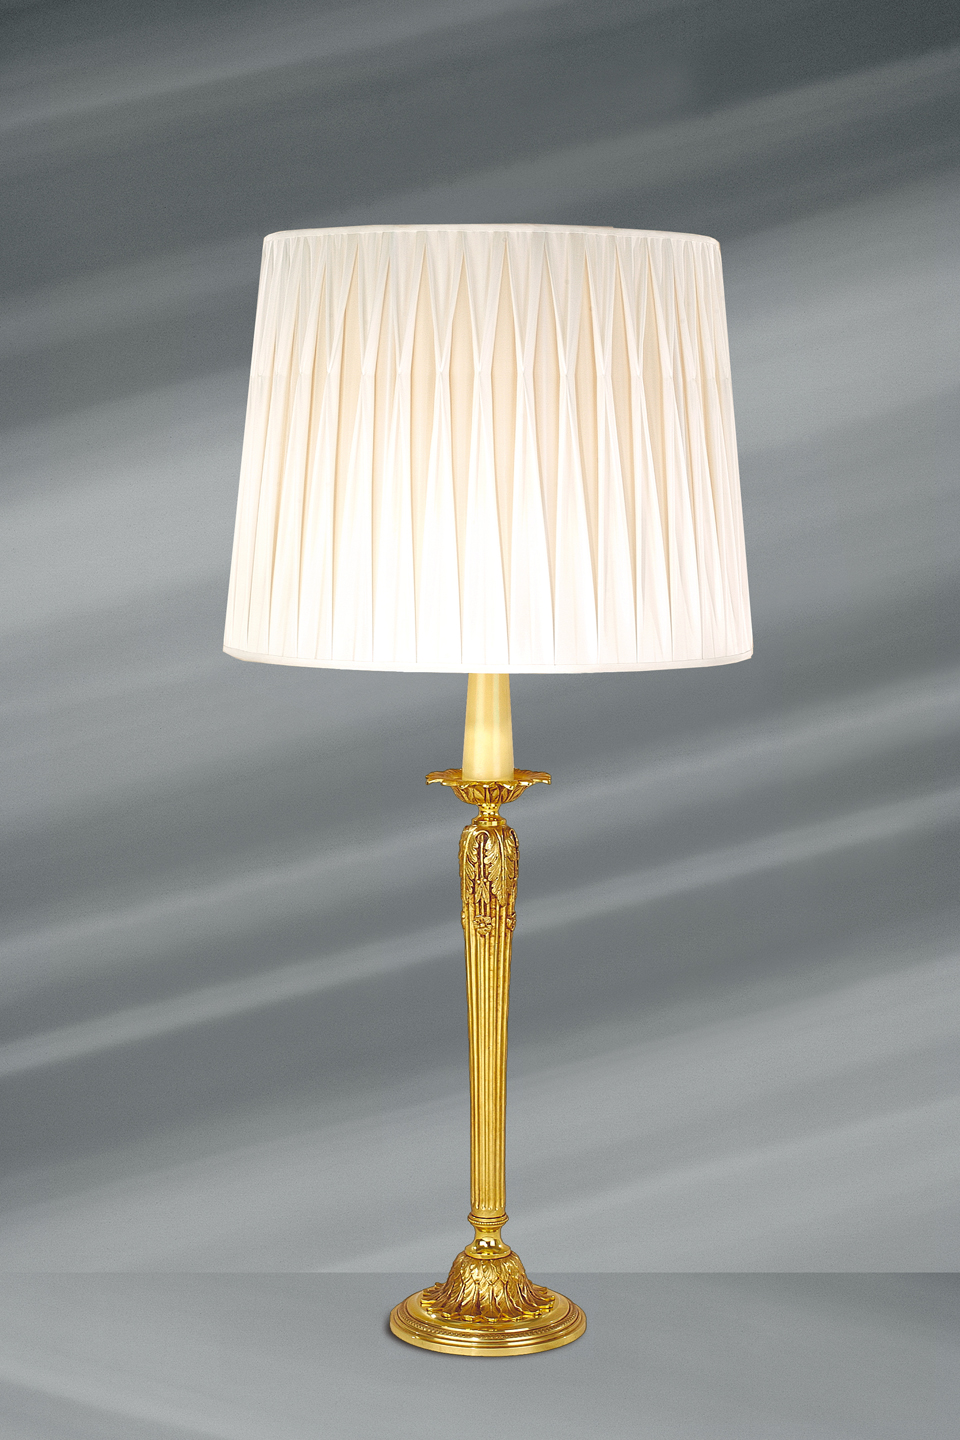 Lampe Gold Large Lamp With Delicately Pleated White Shade Fluted Body Acanthus Leaf Decor Old Gold Finish